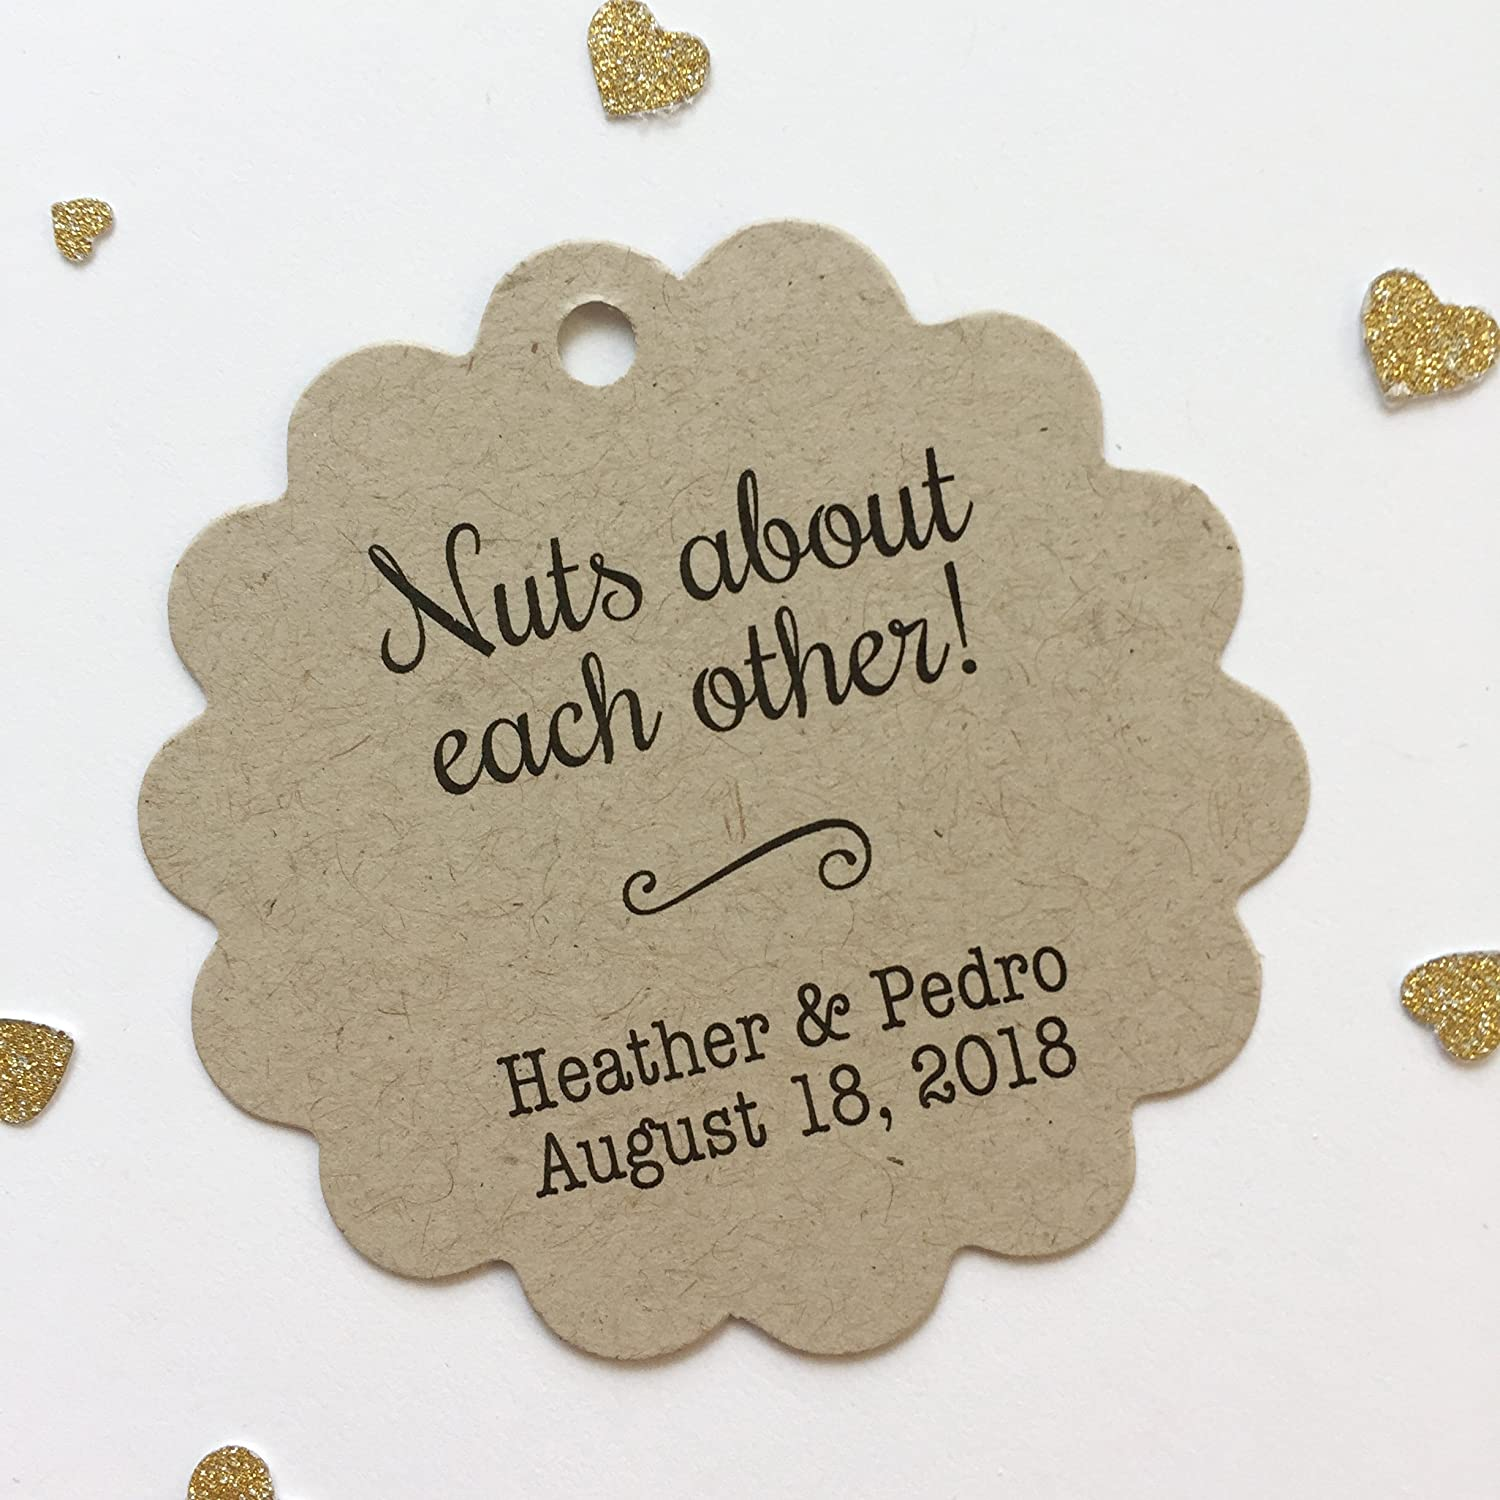 Almond Wedding Favor Tags Nuts About Each Other Kraft Tags SC-020-KR Nuts Wedding Favor Tags